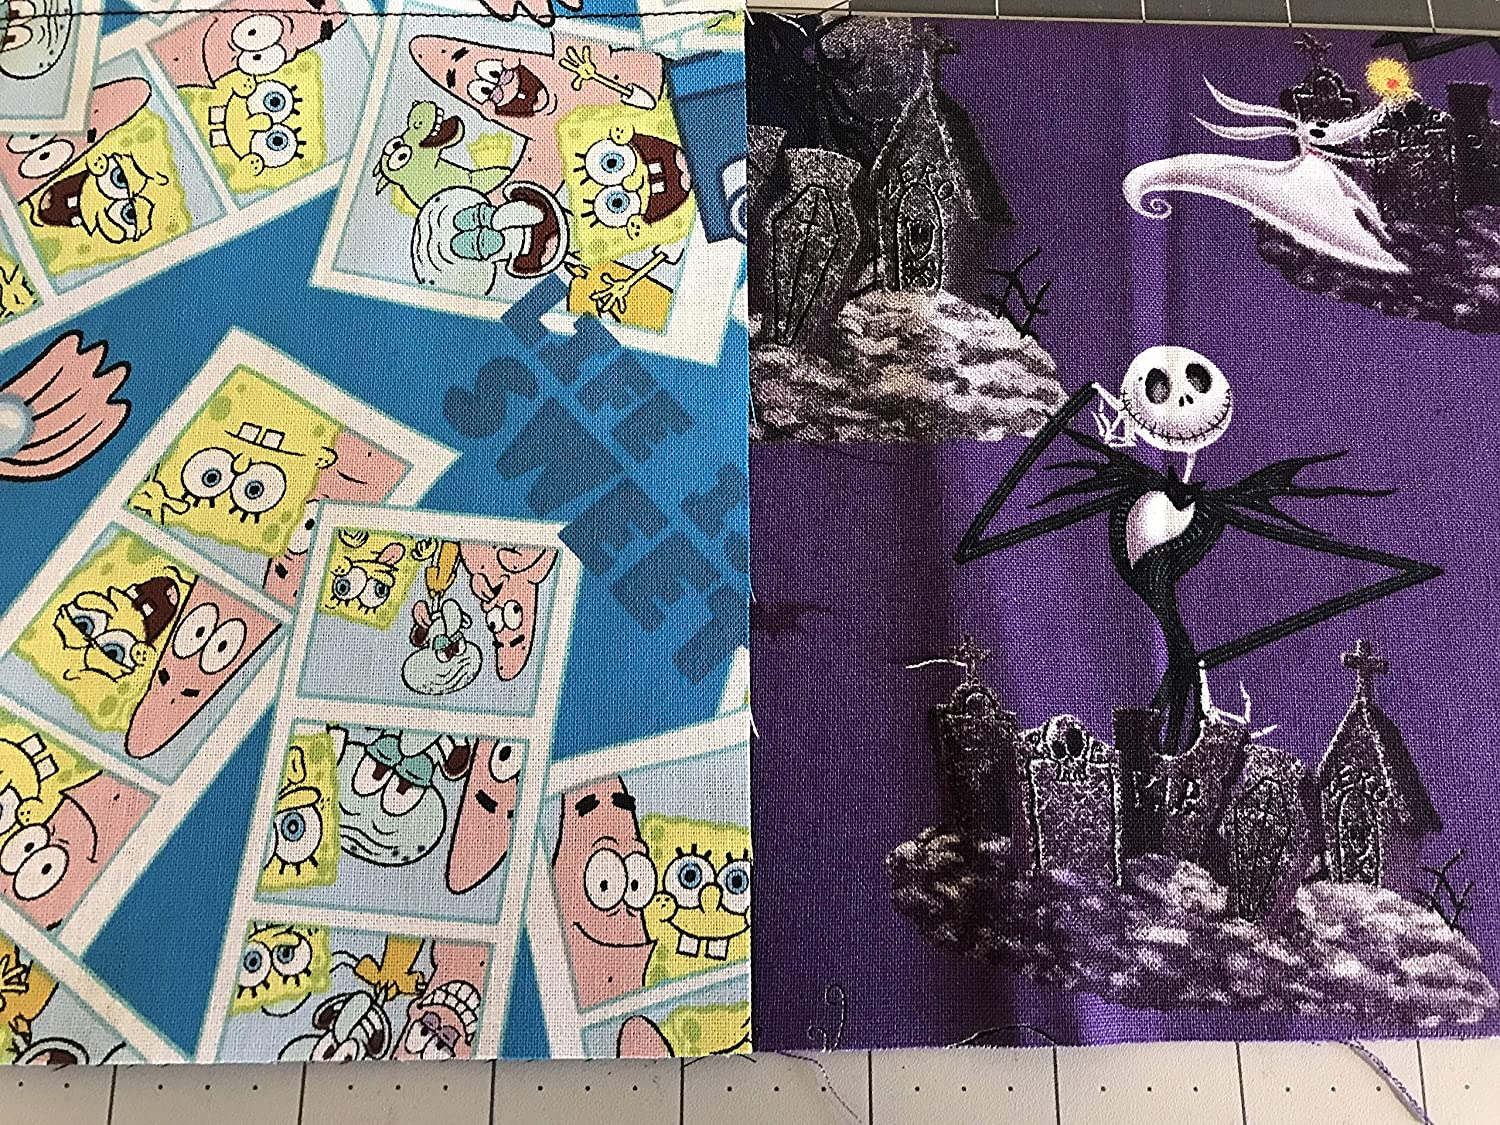 Handmade Janet aprons Hip Side black Apron money Pouch Waitress pockets Restaurant Bars Cafes Janets Aprons SpongeBob /& Nightmare before christmas 2 Pack I Pad Mini Check out all 51 prints @